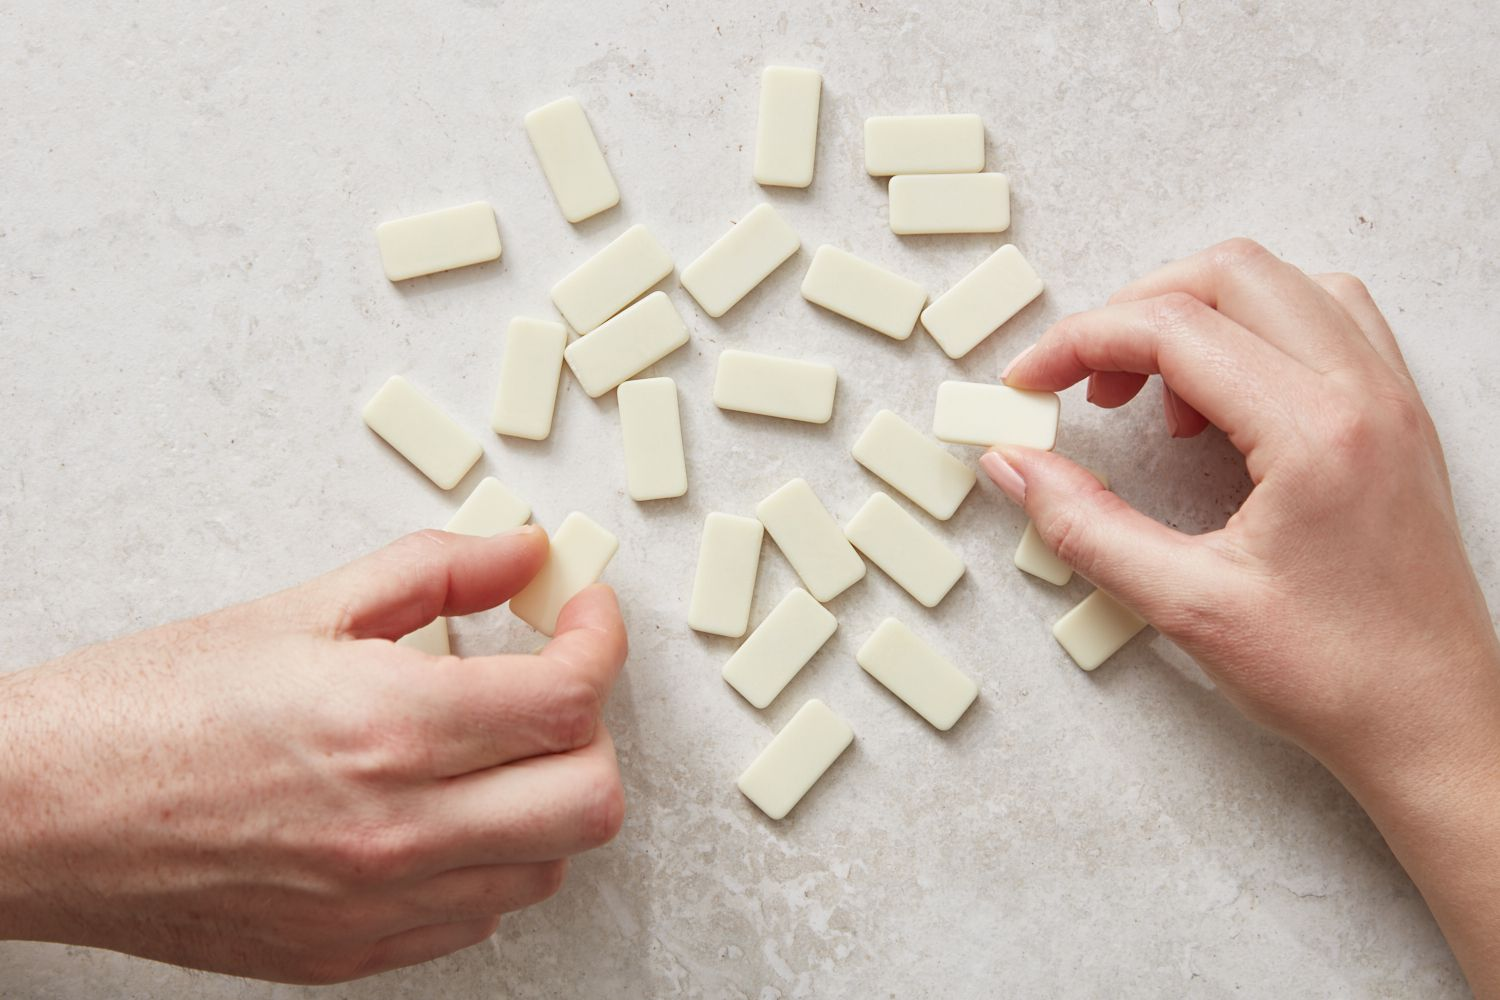 face-down dominoes